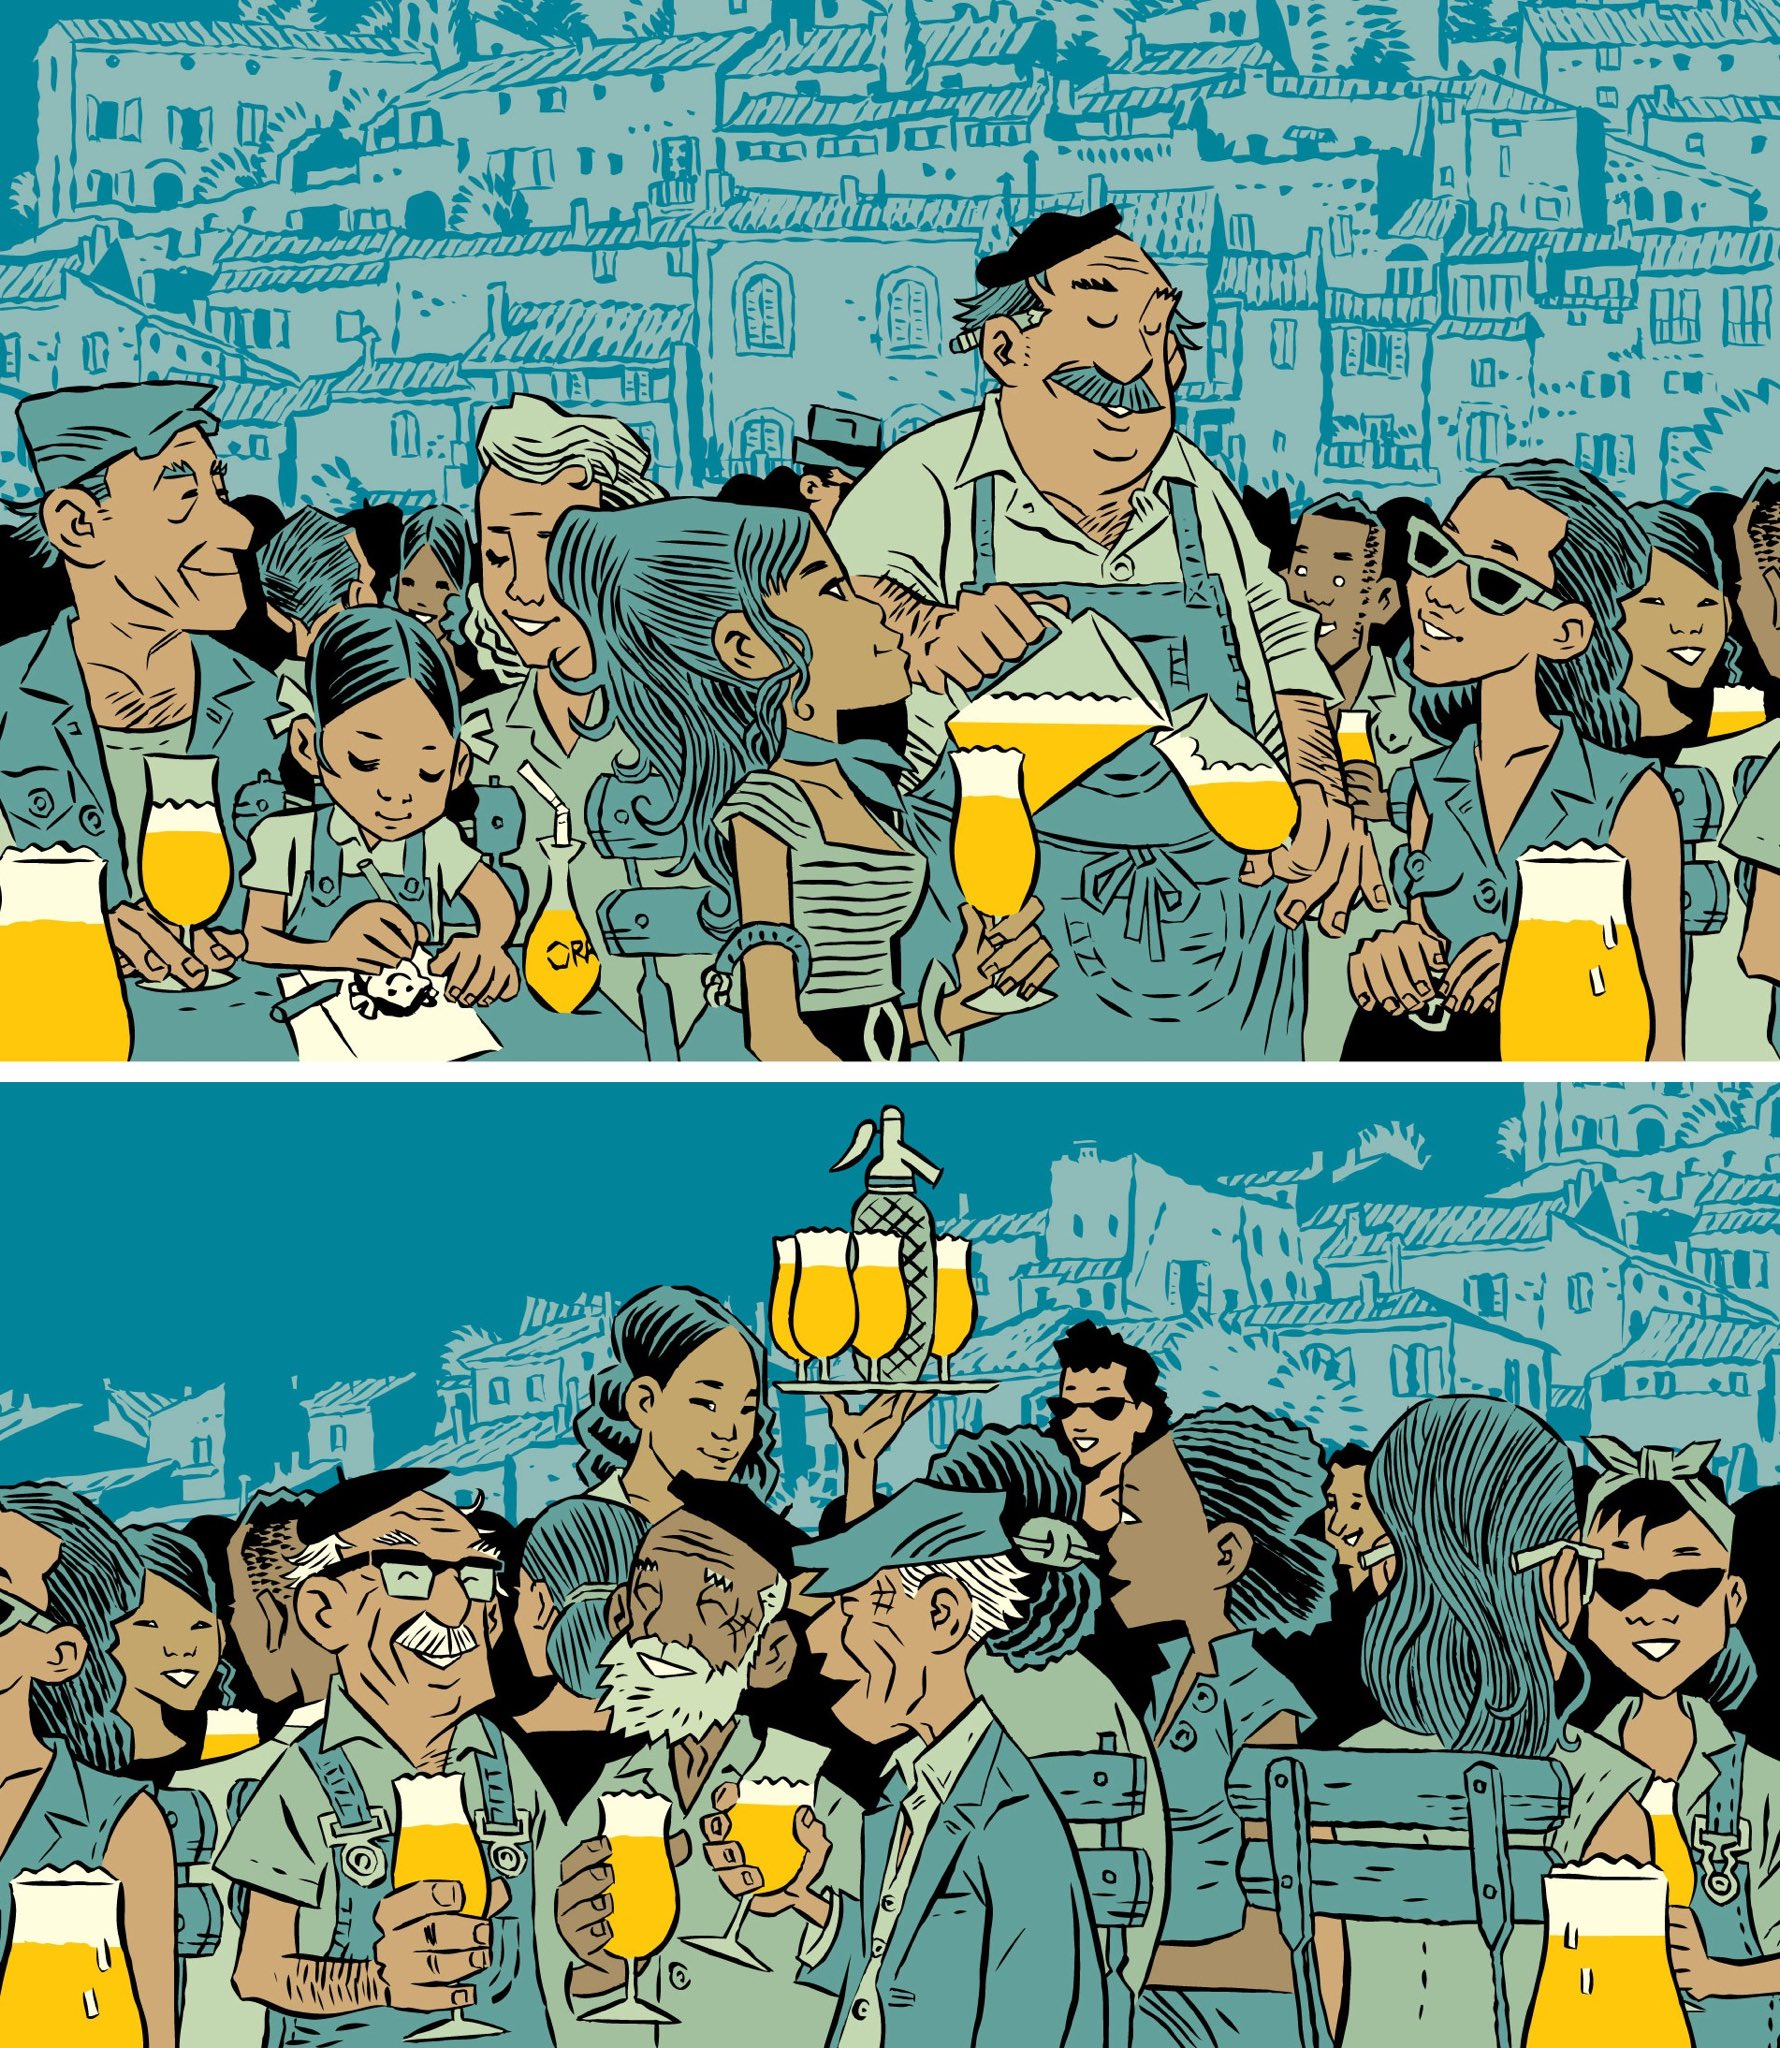 Characters for a new @burningskybeer bottle label. https://t.co/P0vicTbFTv